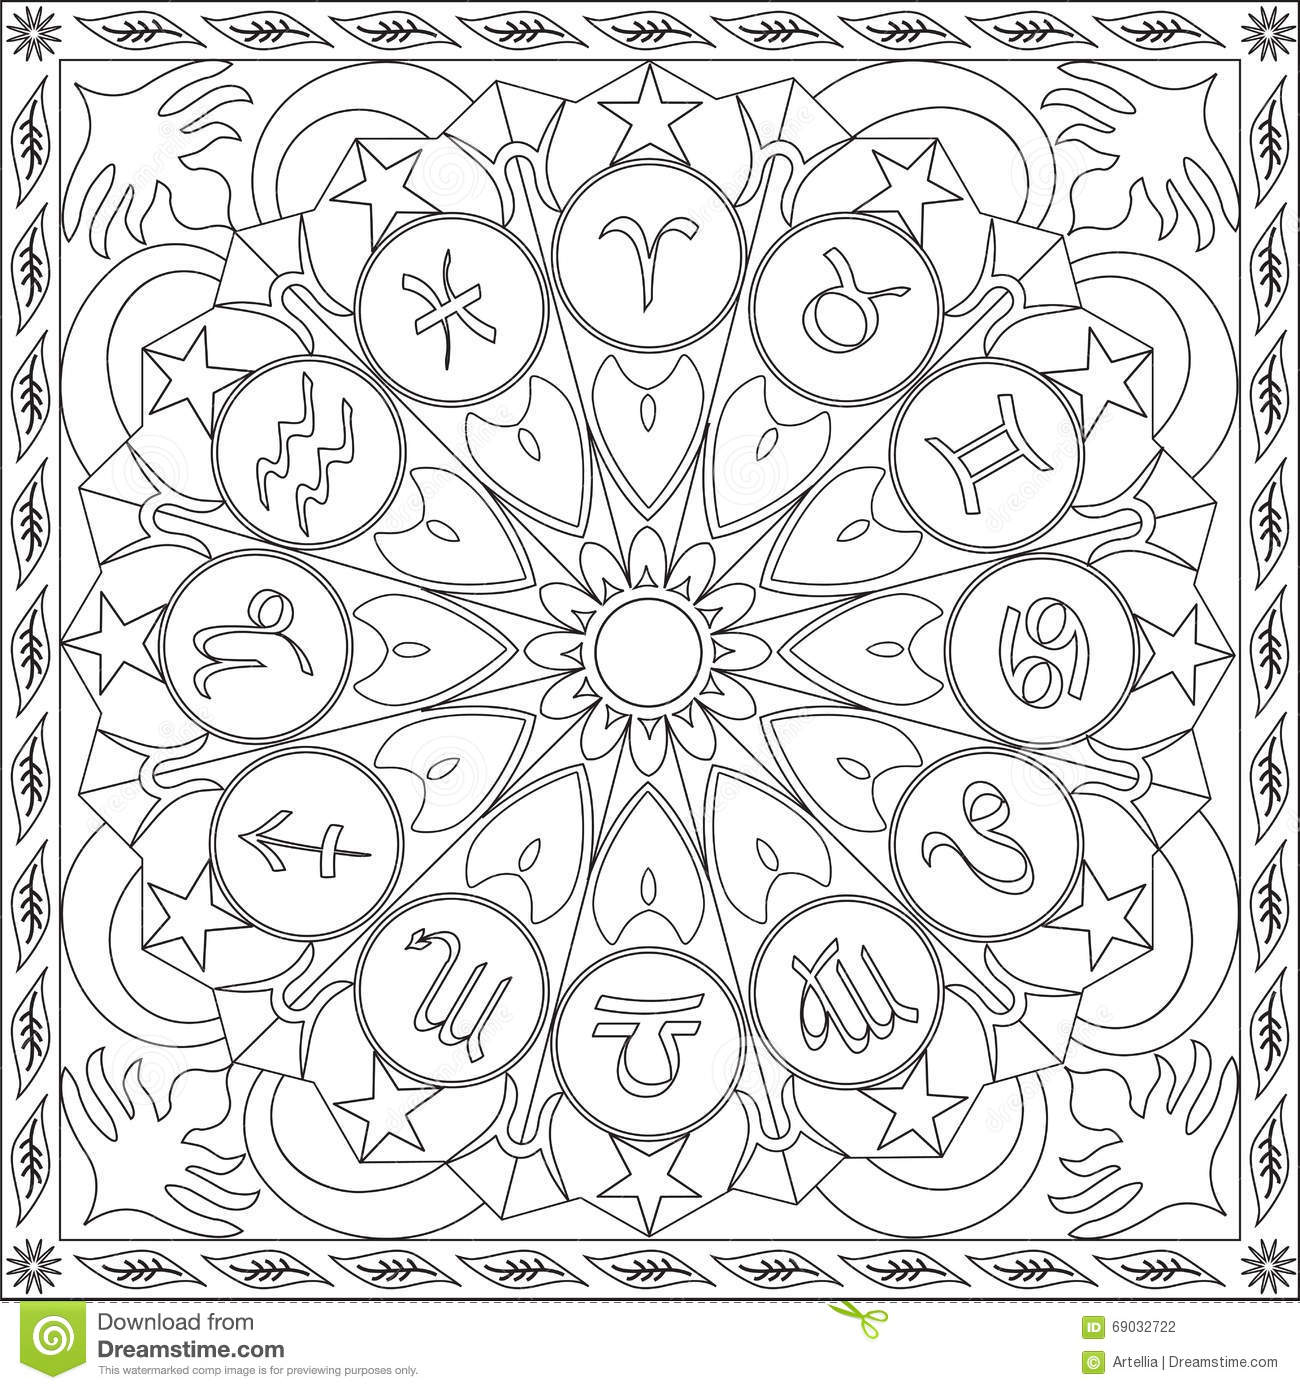 related post for zodiac signs coloring pages